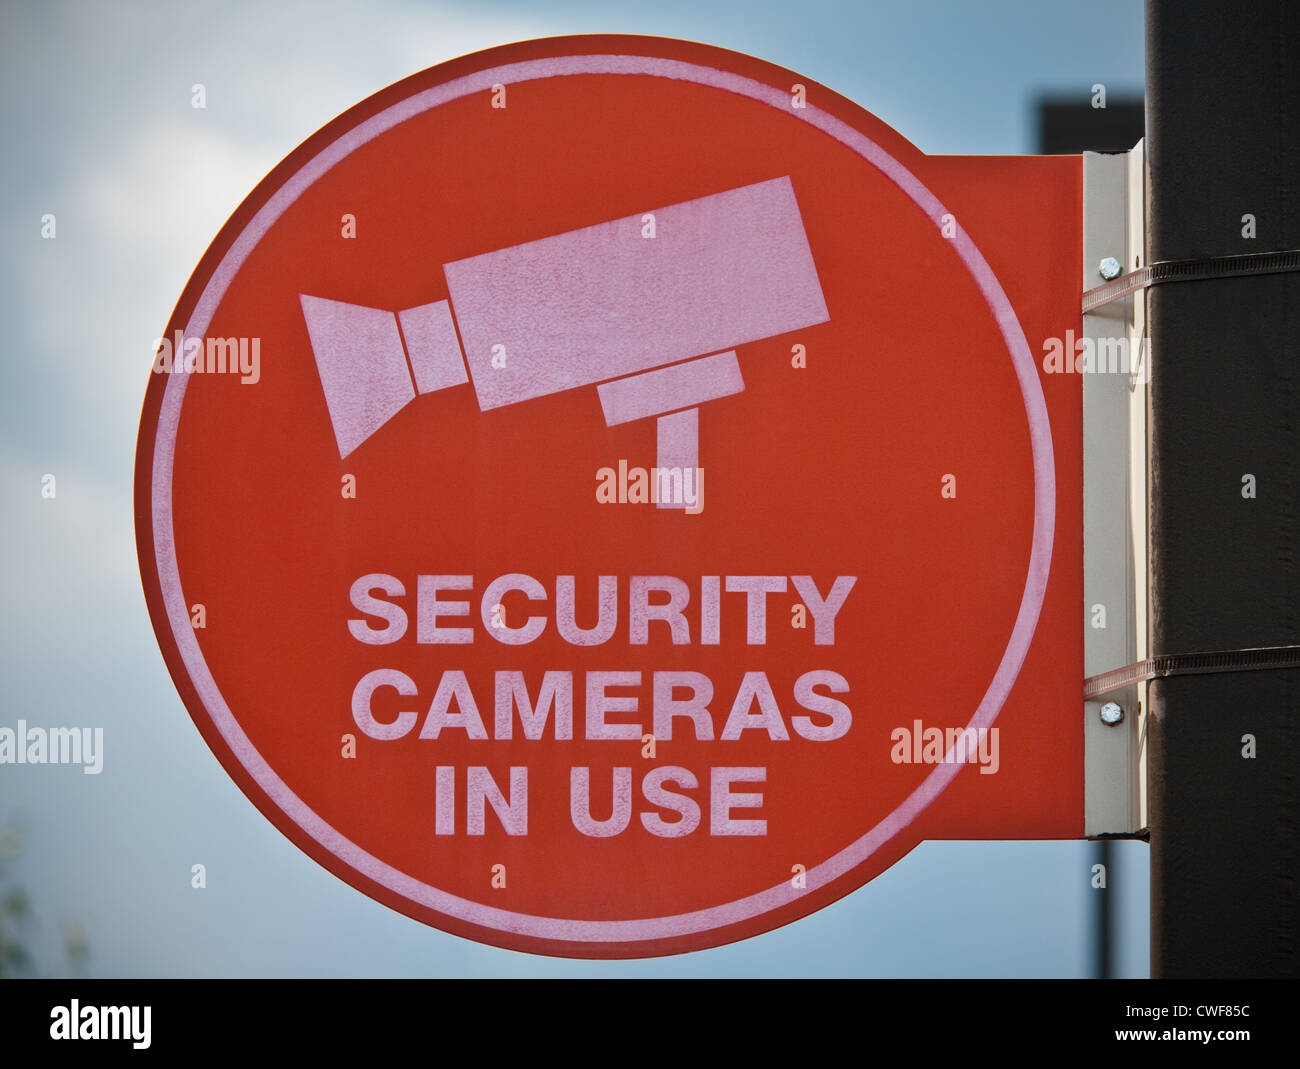 Security cameras in use, ubiquitous surveillance, USA - Stock Image